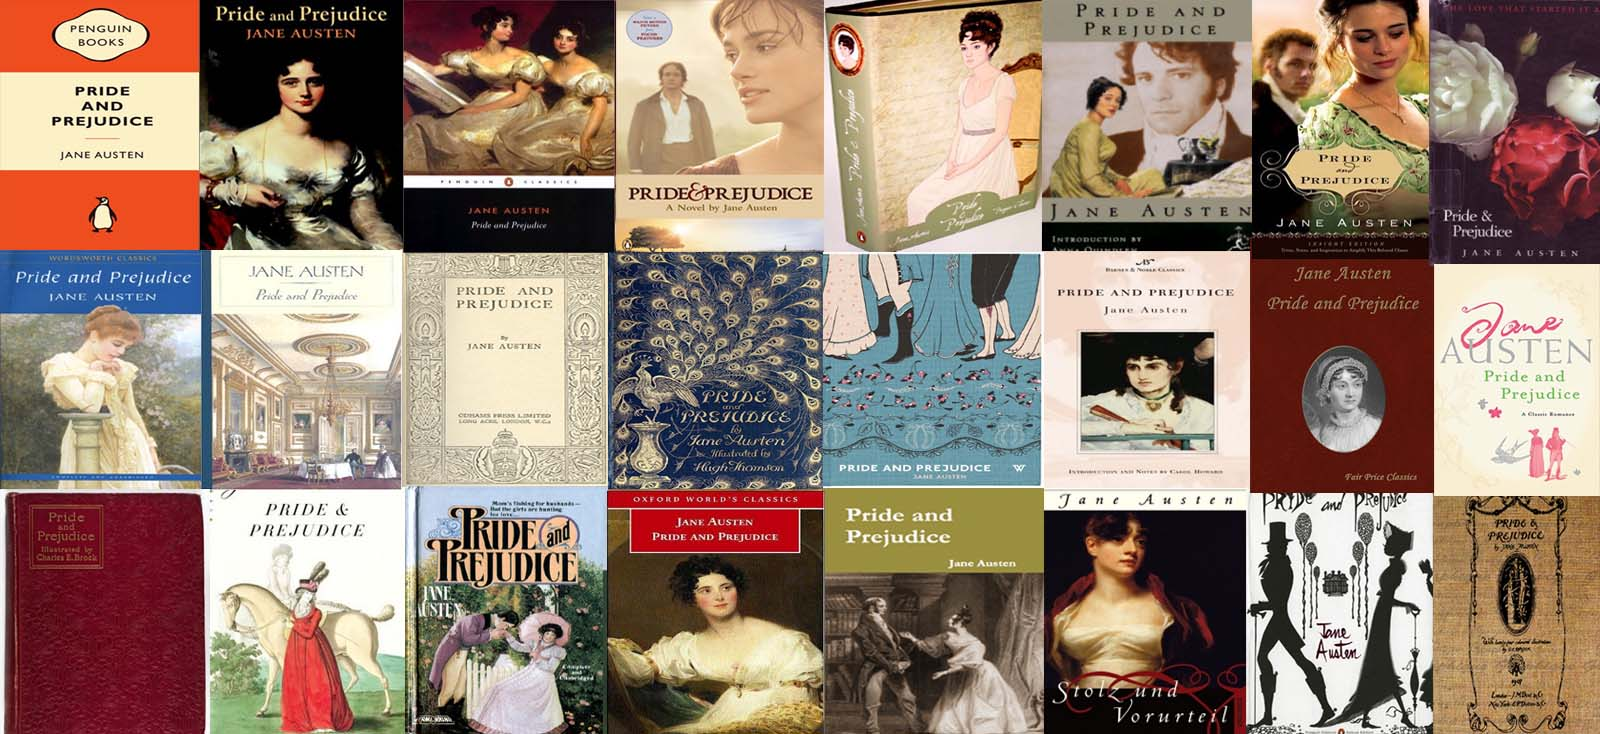 pride prejudice jane austen essays Themes of pride and prejudice word access to over 100,000 complete essays and there are three main themes in the novel pride and prejudice by jane austen.